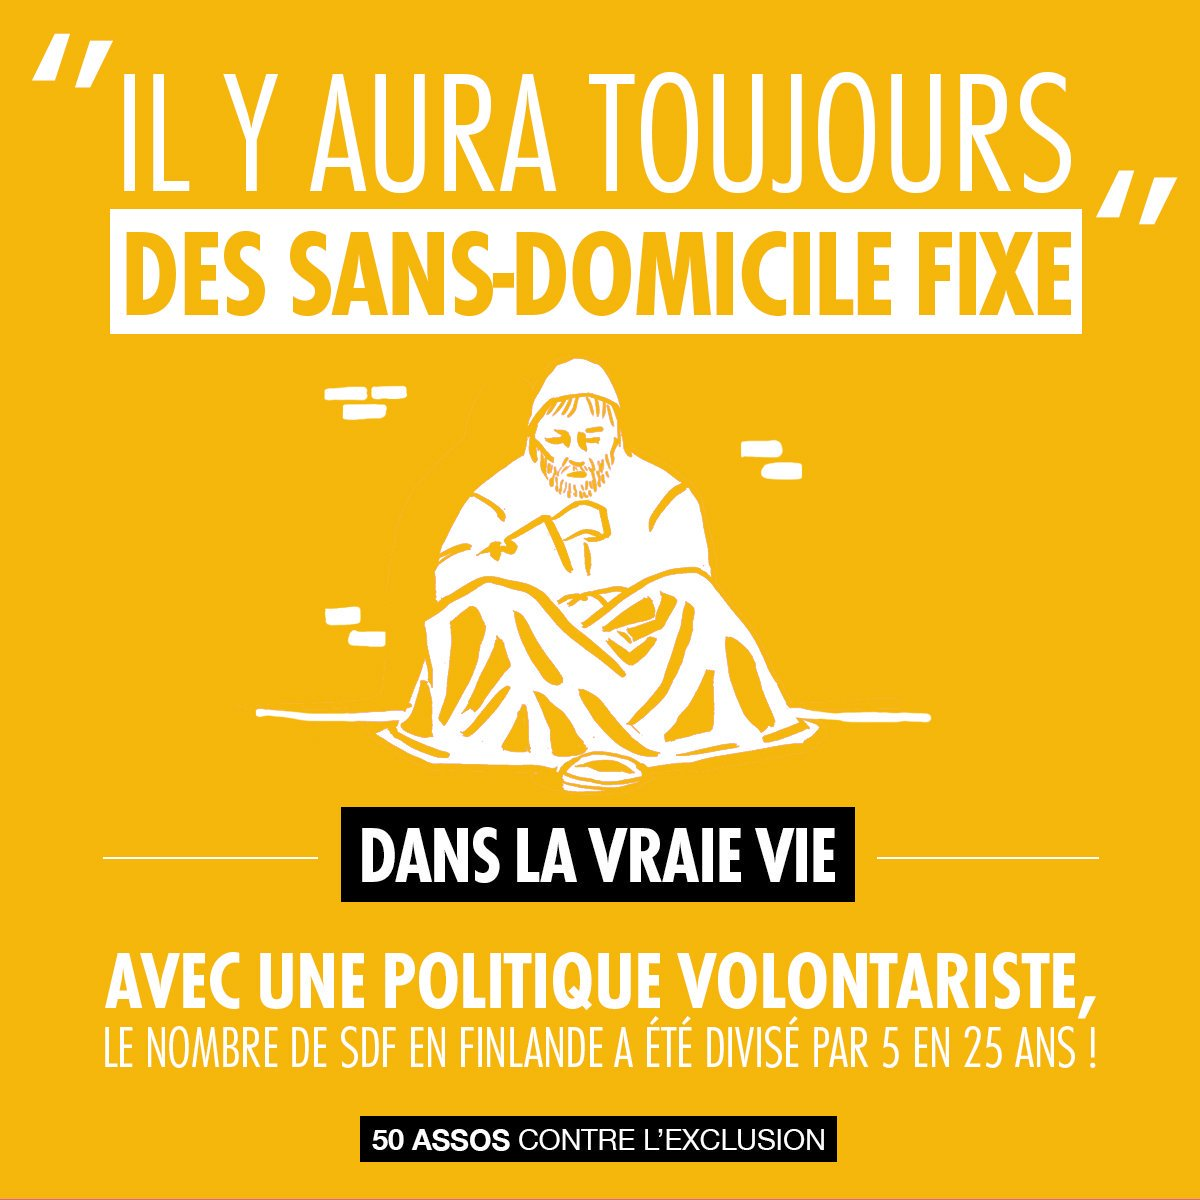 Mobilier Urbain Anti Squat Page On Twitter